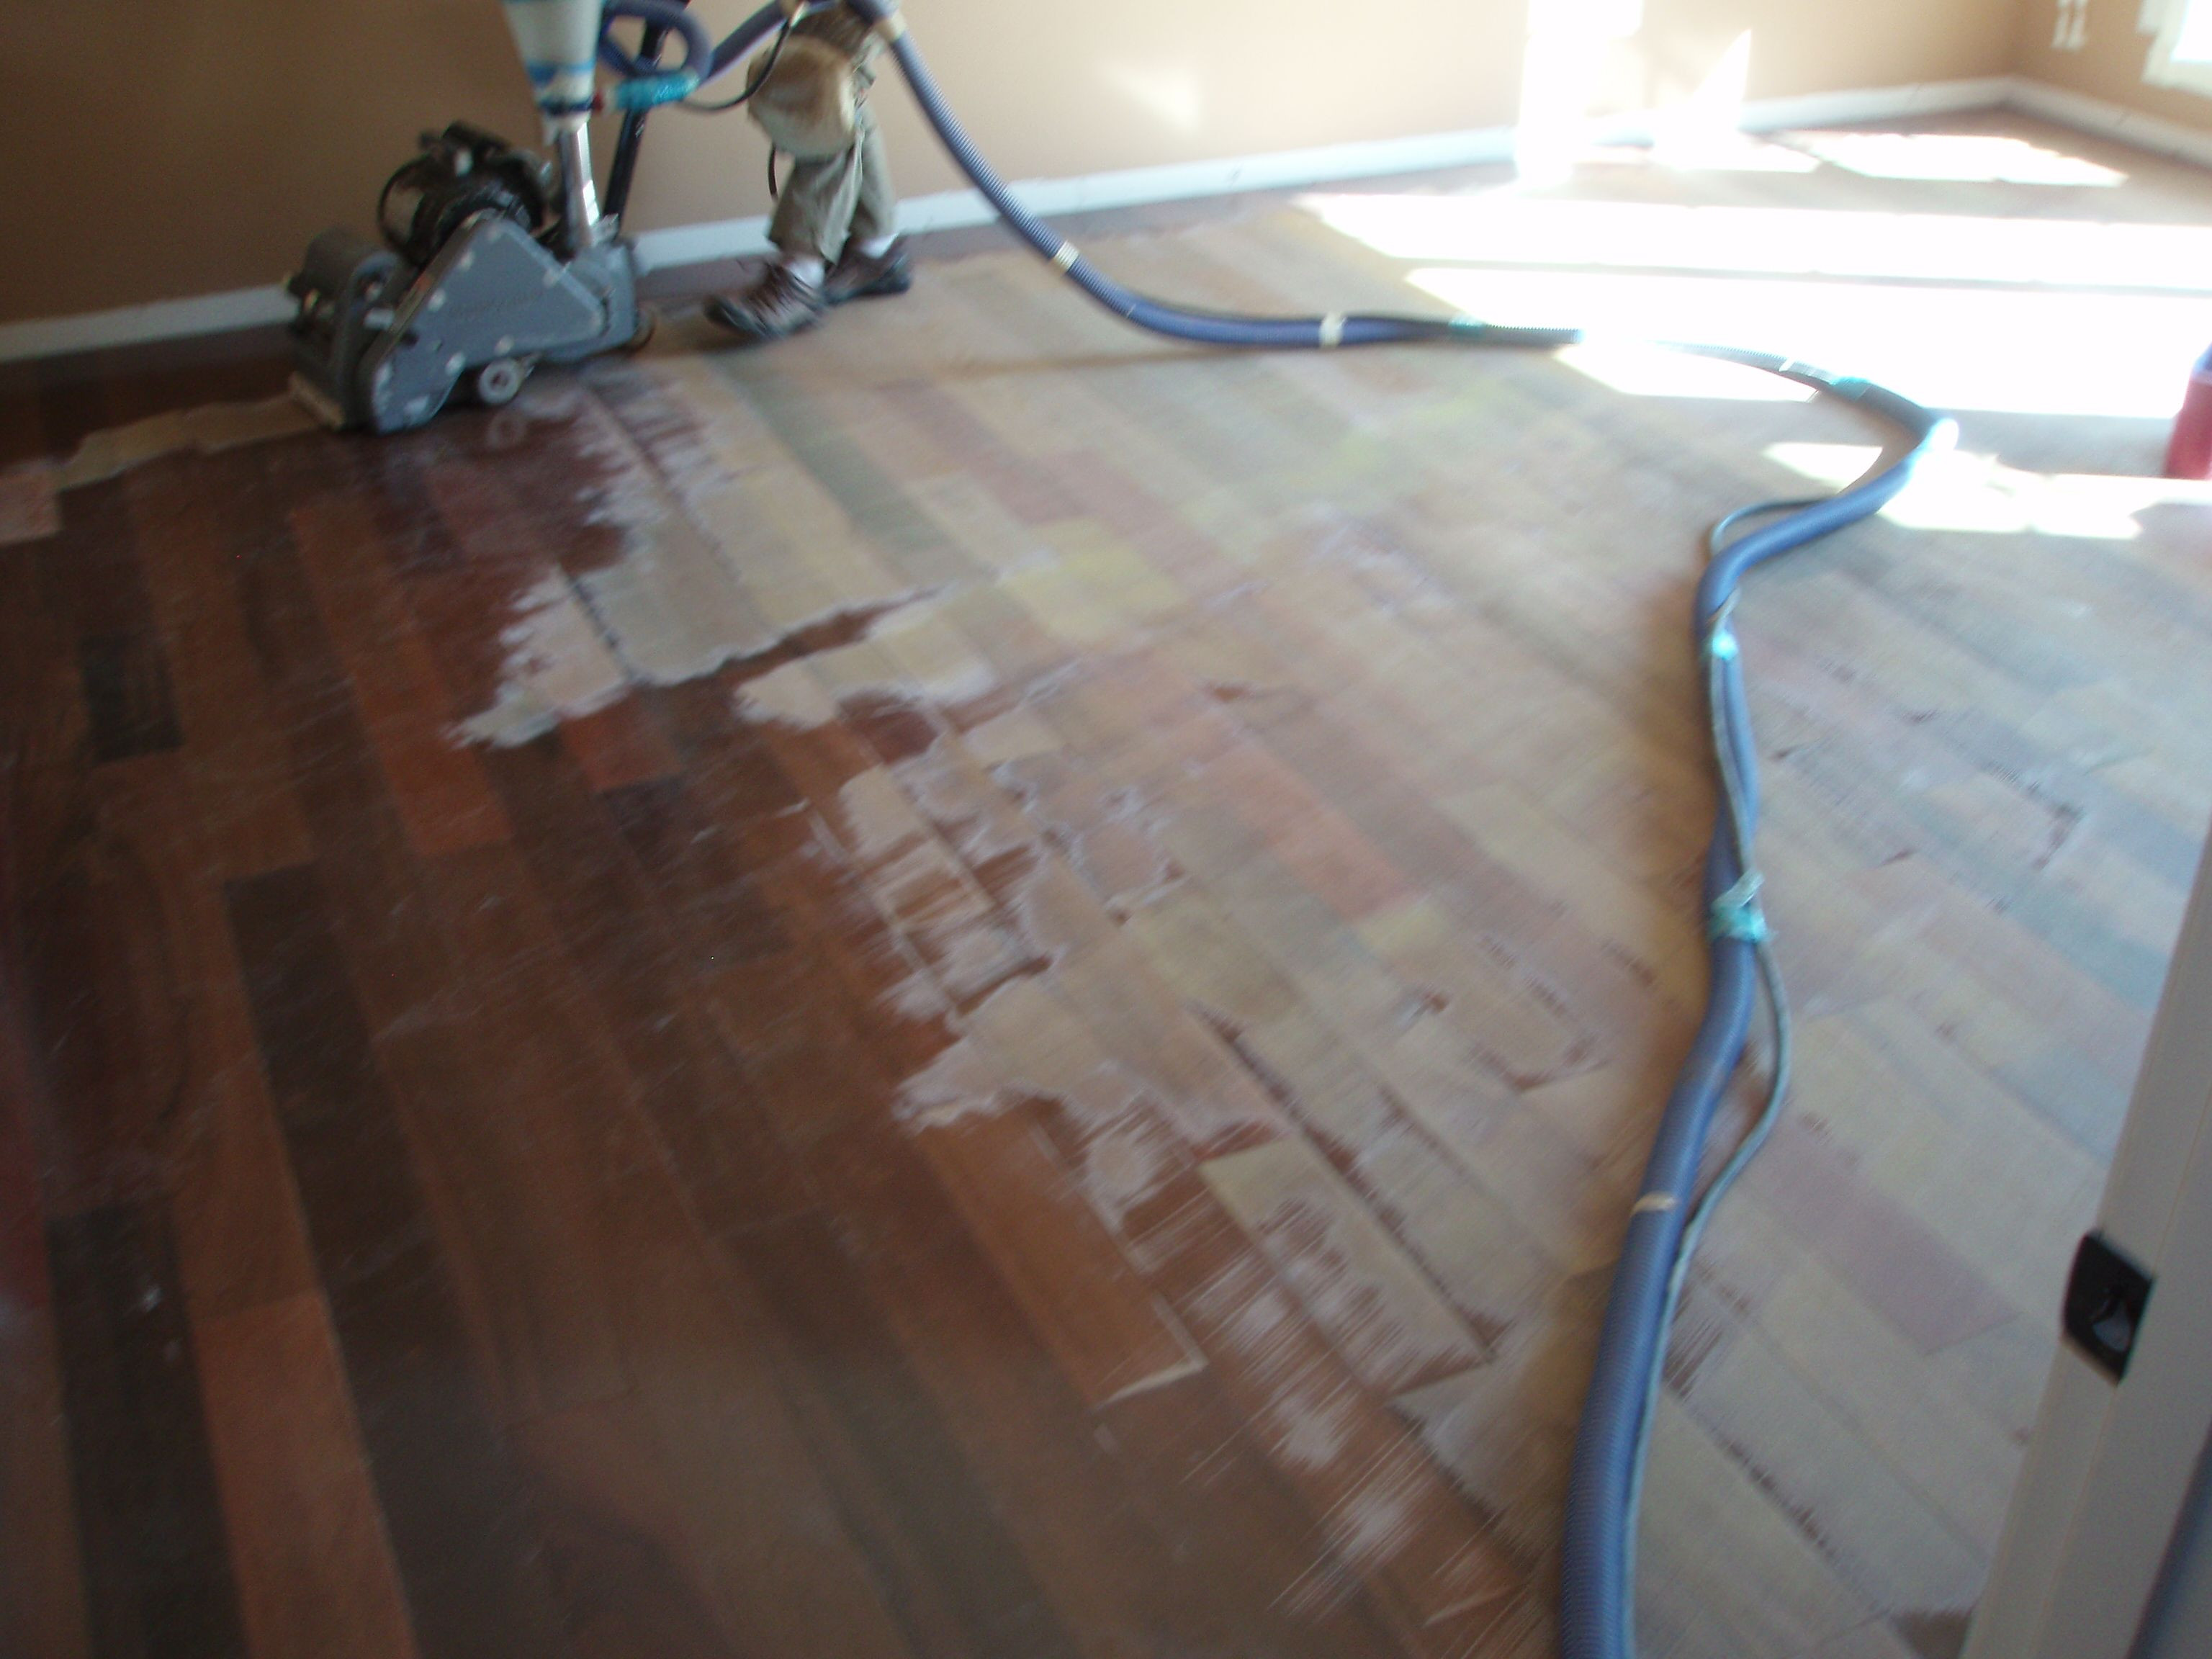 19 Unique How Much Do Engineered Hardwood Floors Cost 2021 free download how much do engineered hardwood floors cost of will refinishingod floors pet stains old without sanding wood with regarding will refinishingod floors pet stains old without sanding wood with